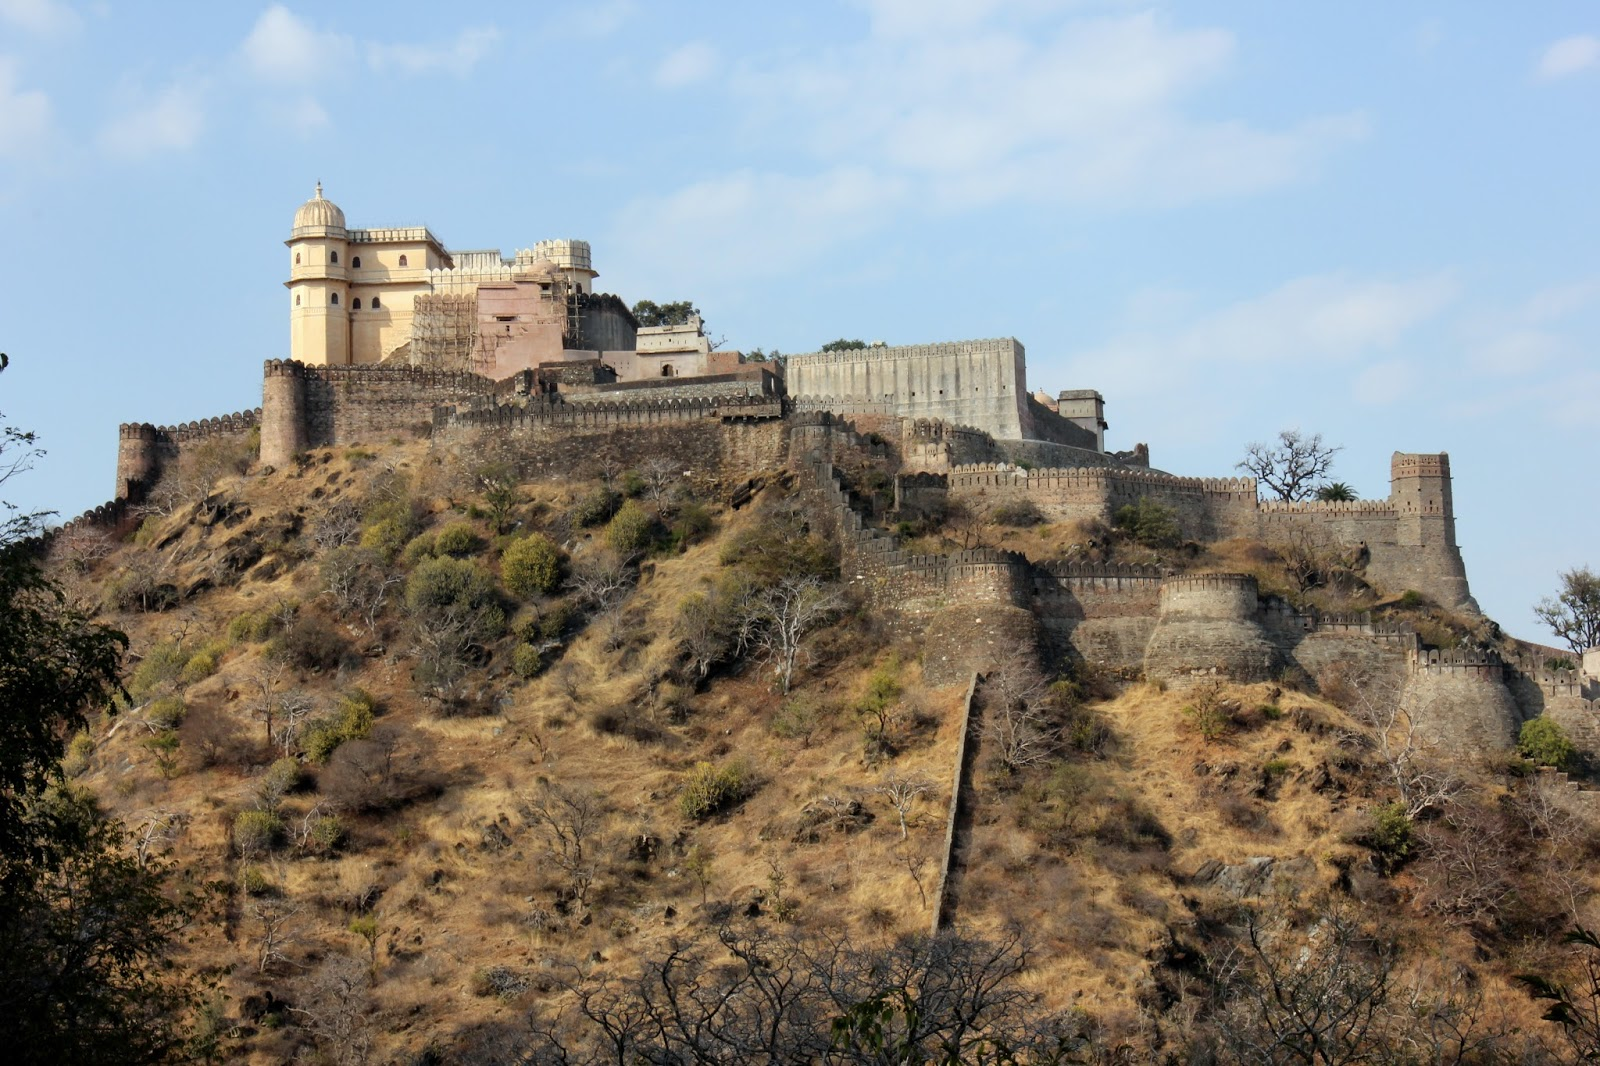 Kumbhalgarh India  city pictures gallery : TraveLore: Great wall of India – Kumbhalgarh Fort